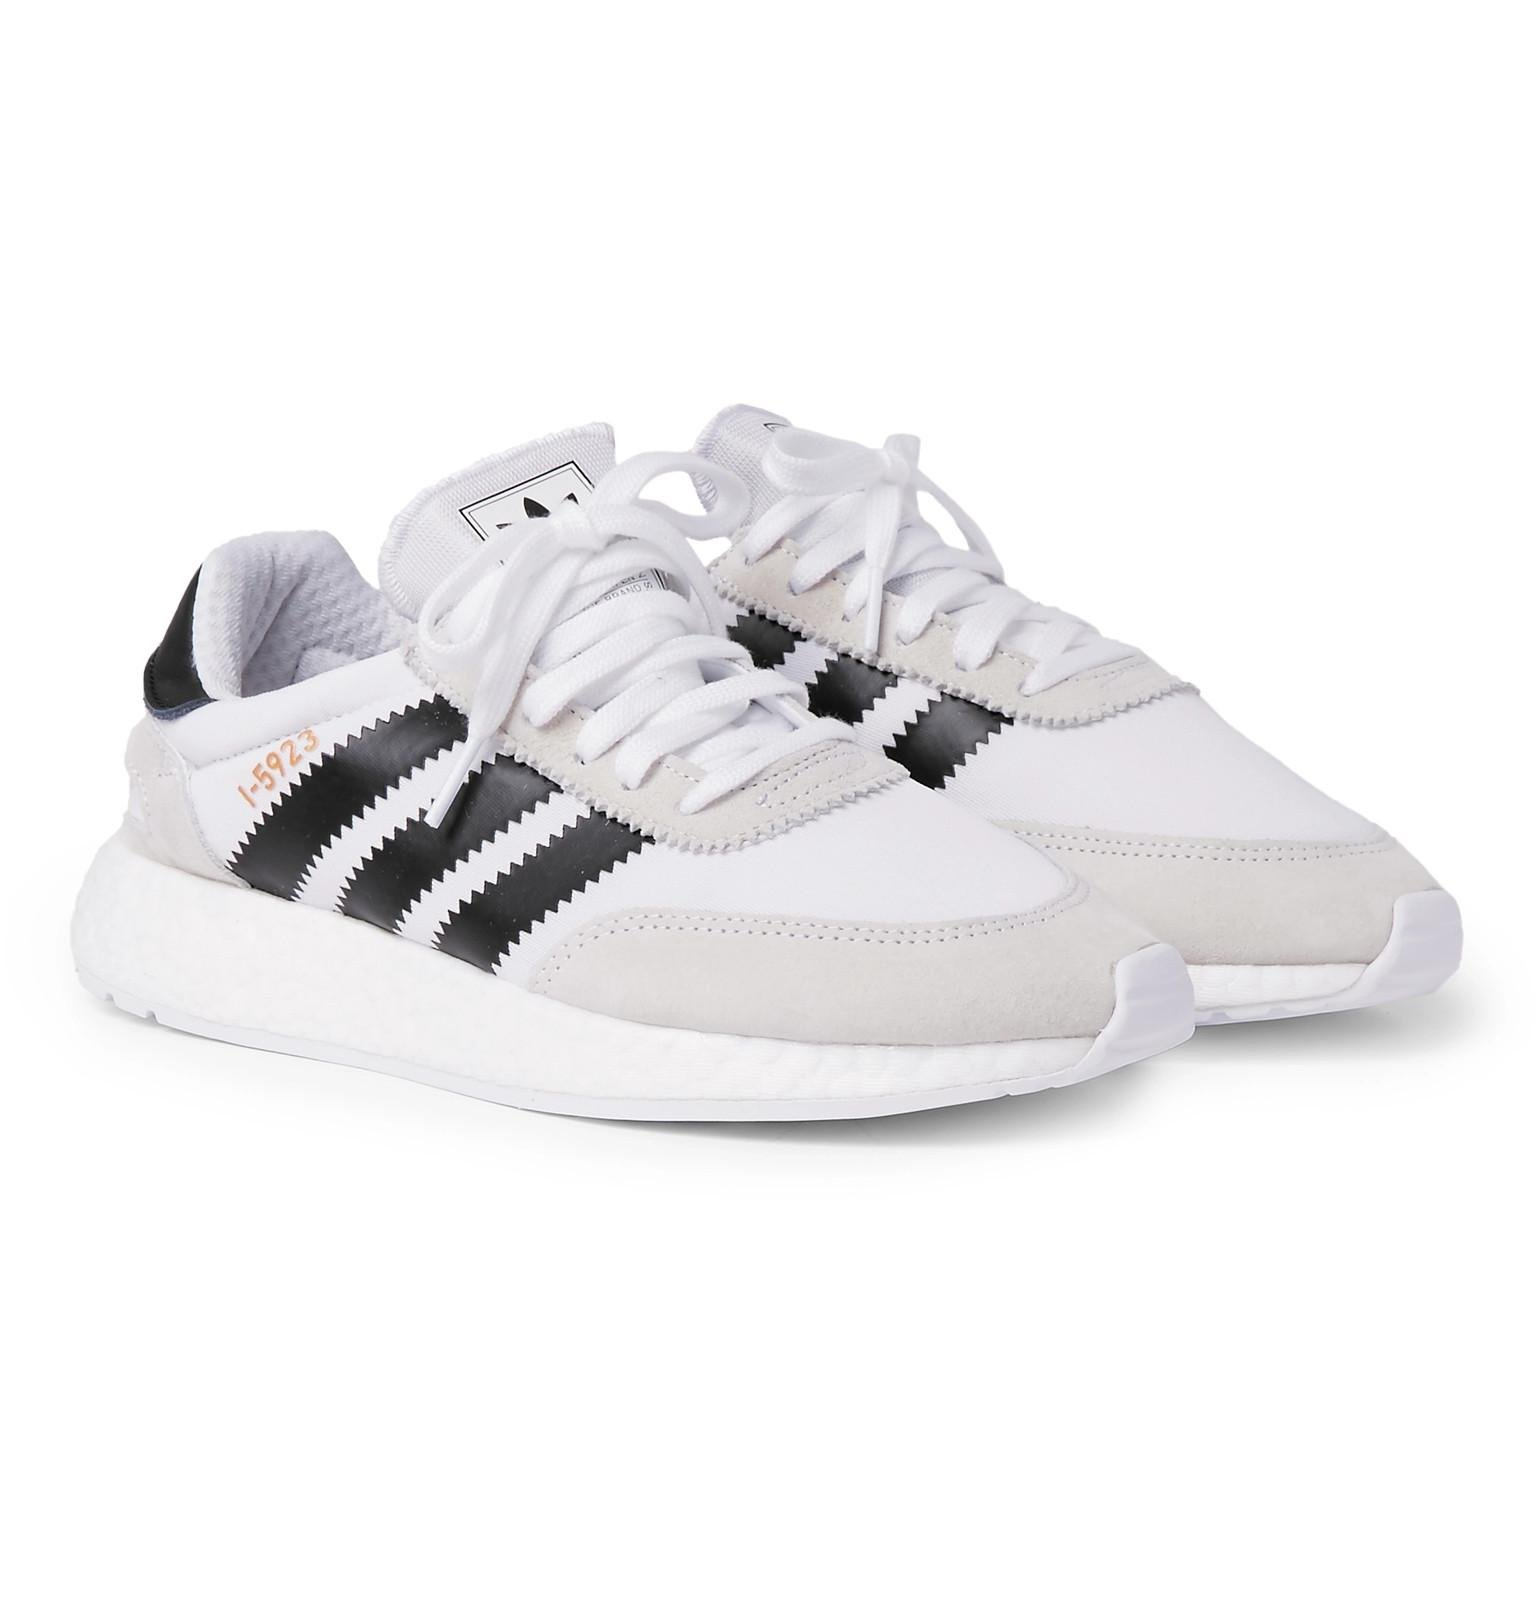 I-5293 Leather And Suede-trimmed Neoprene Sneakers adidas Originals Zq5Xk5CXh